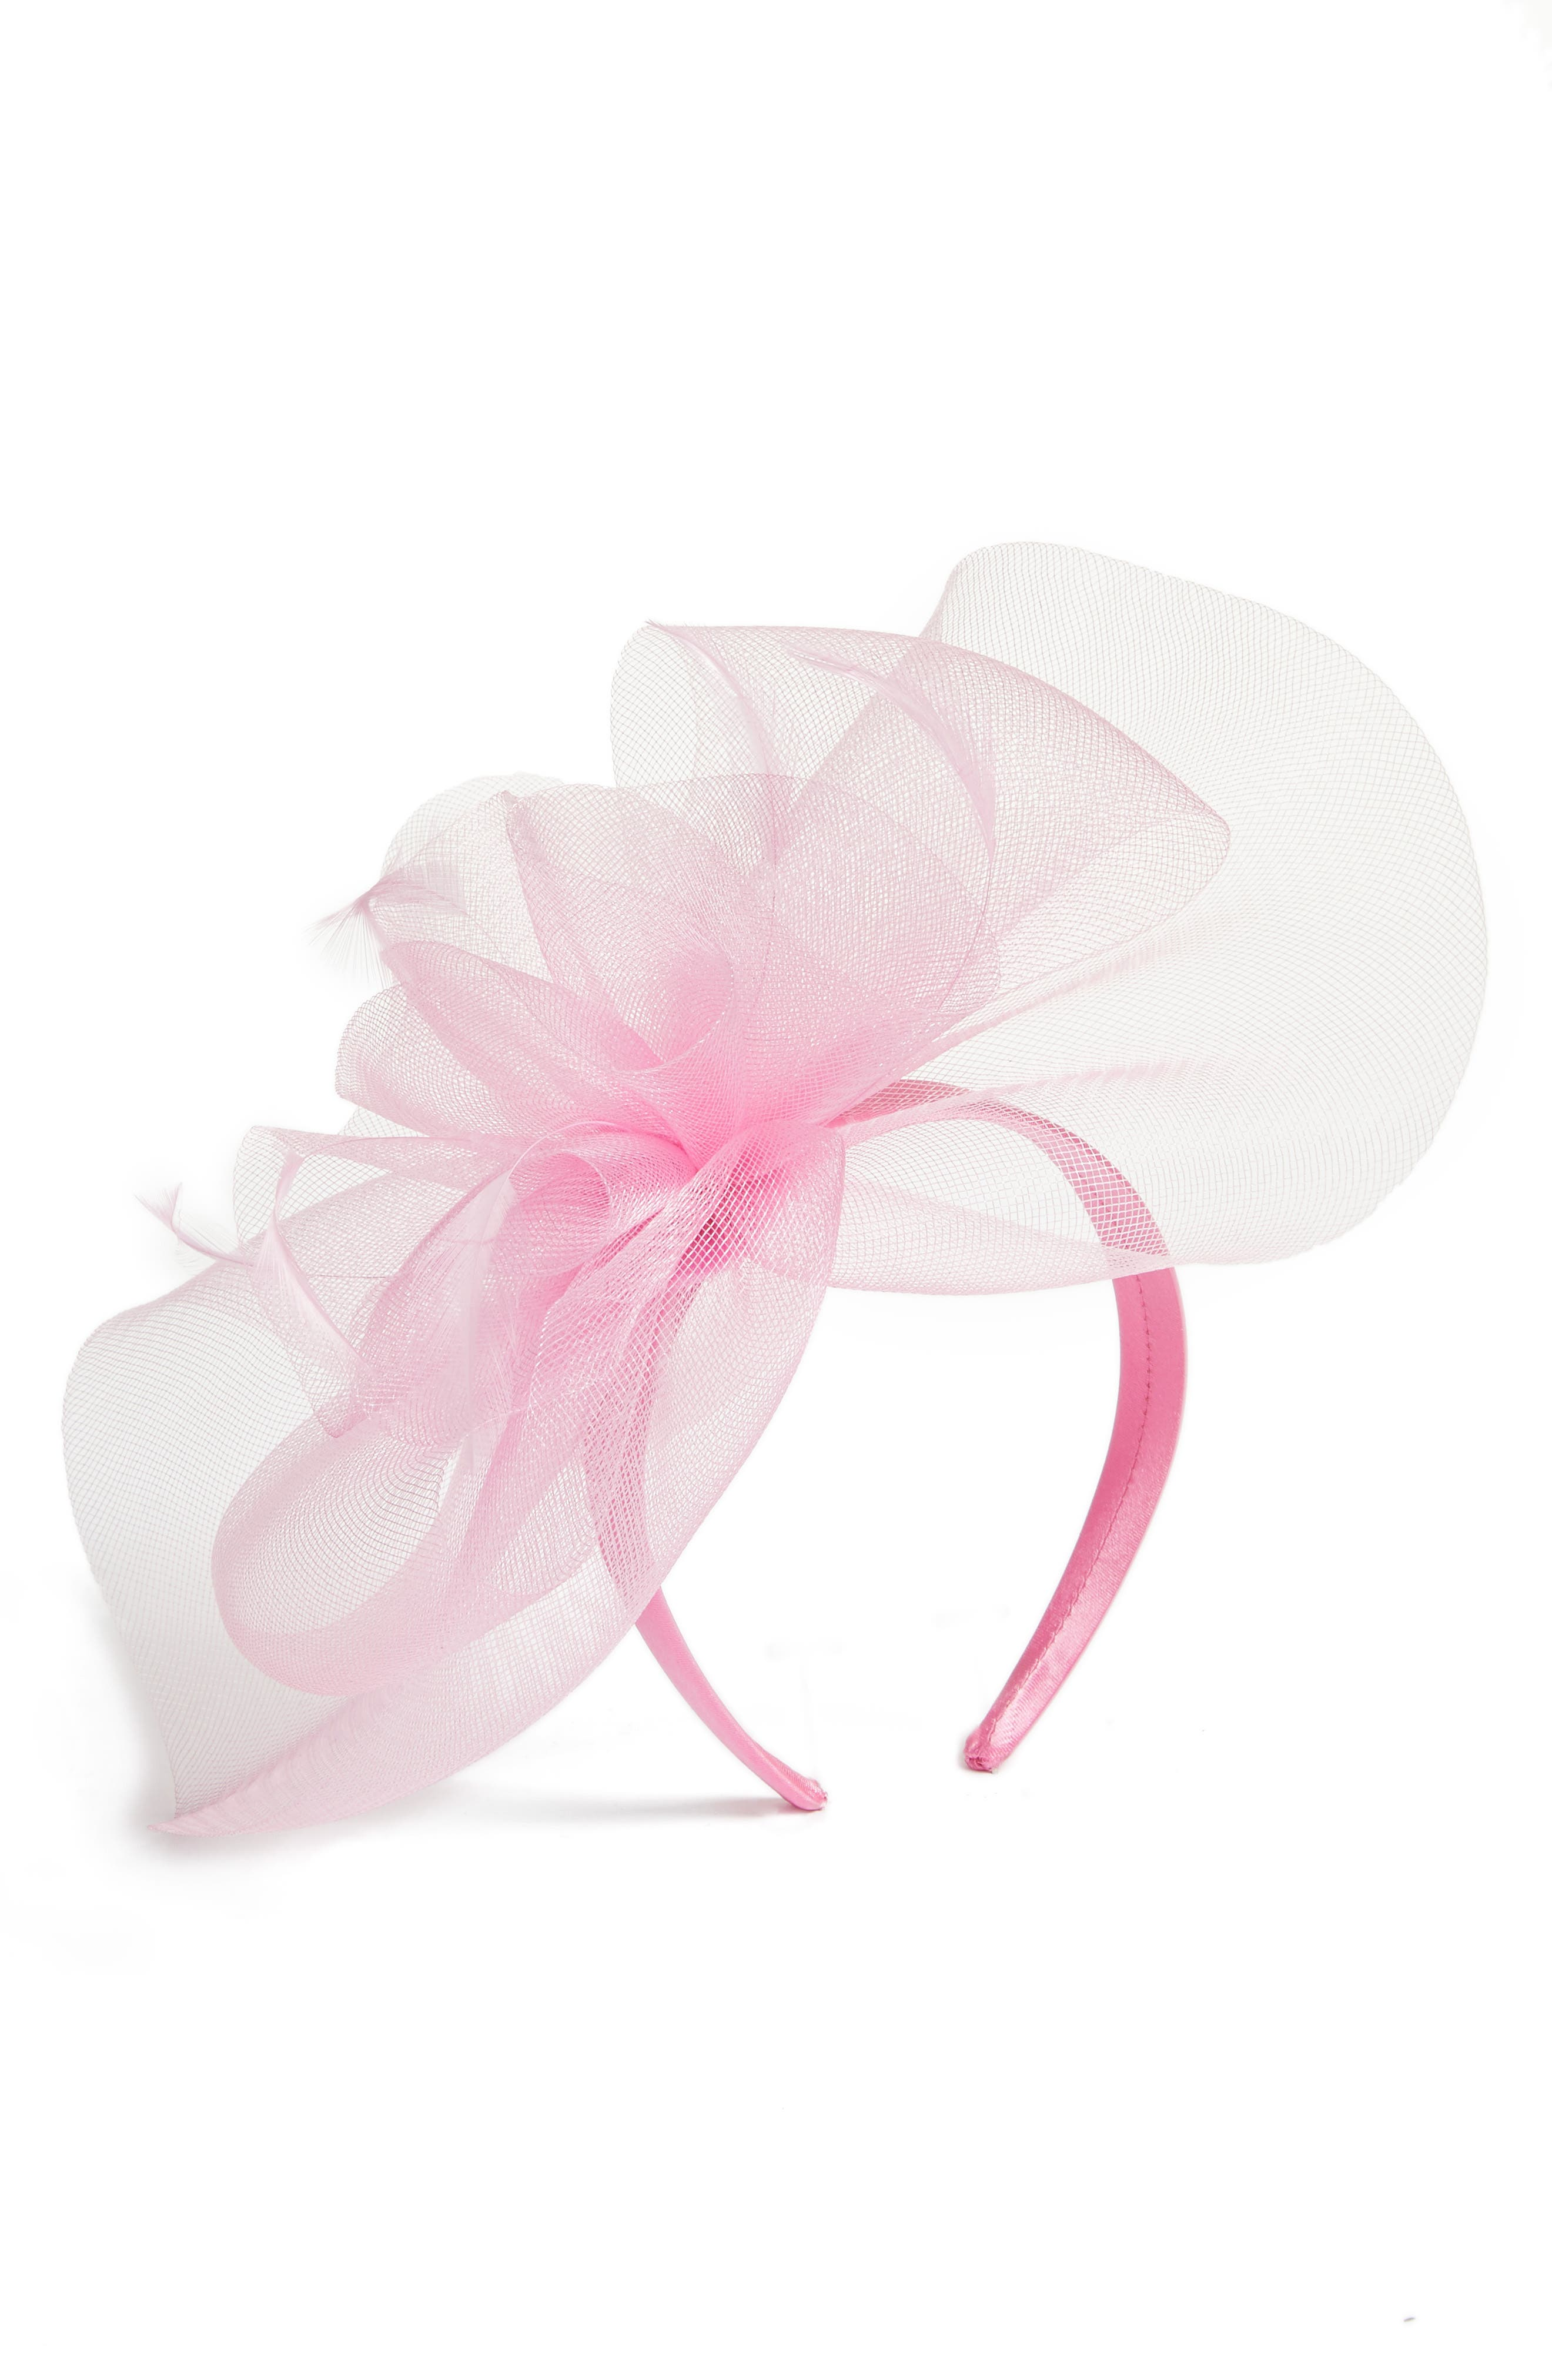 Feather Bouquet Fascinator Headband,                             Main thumbnail 1, color,                             660